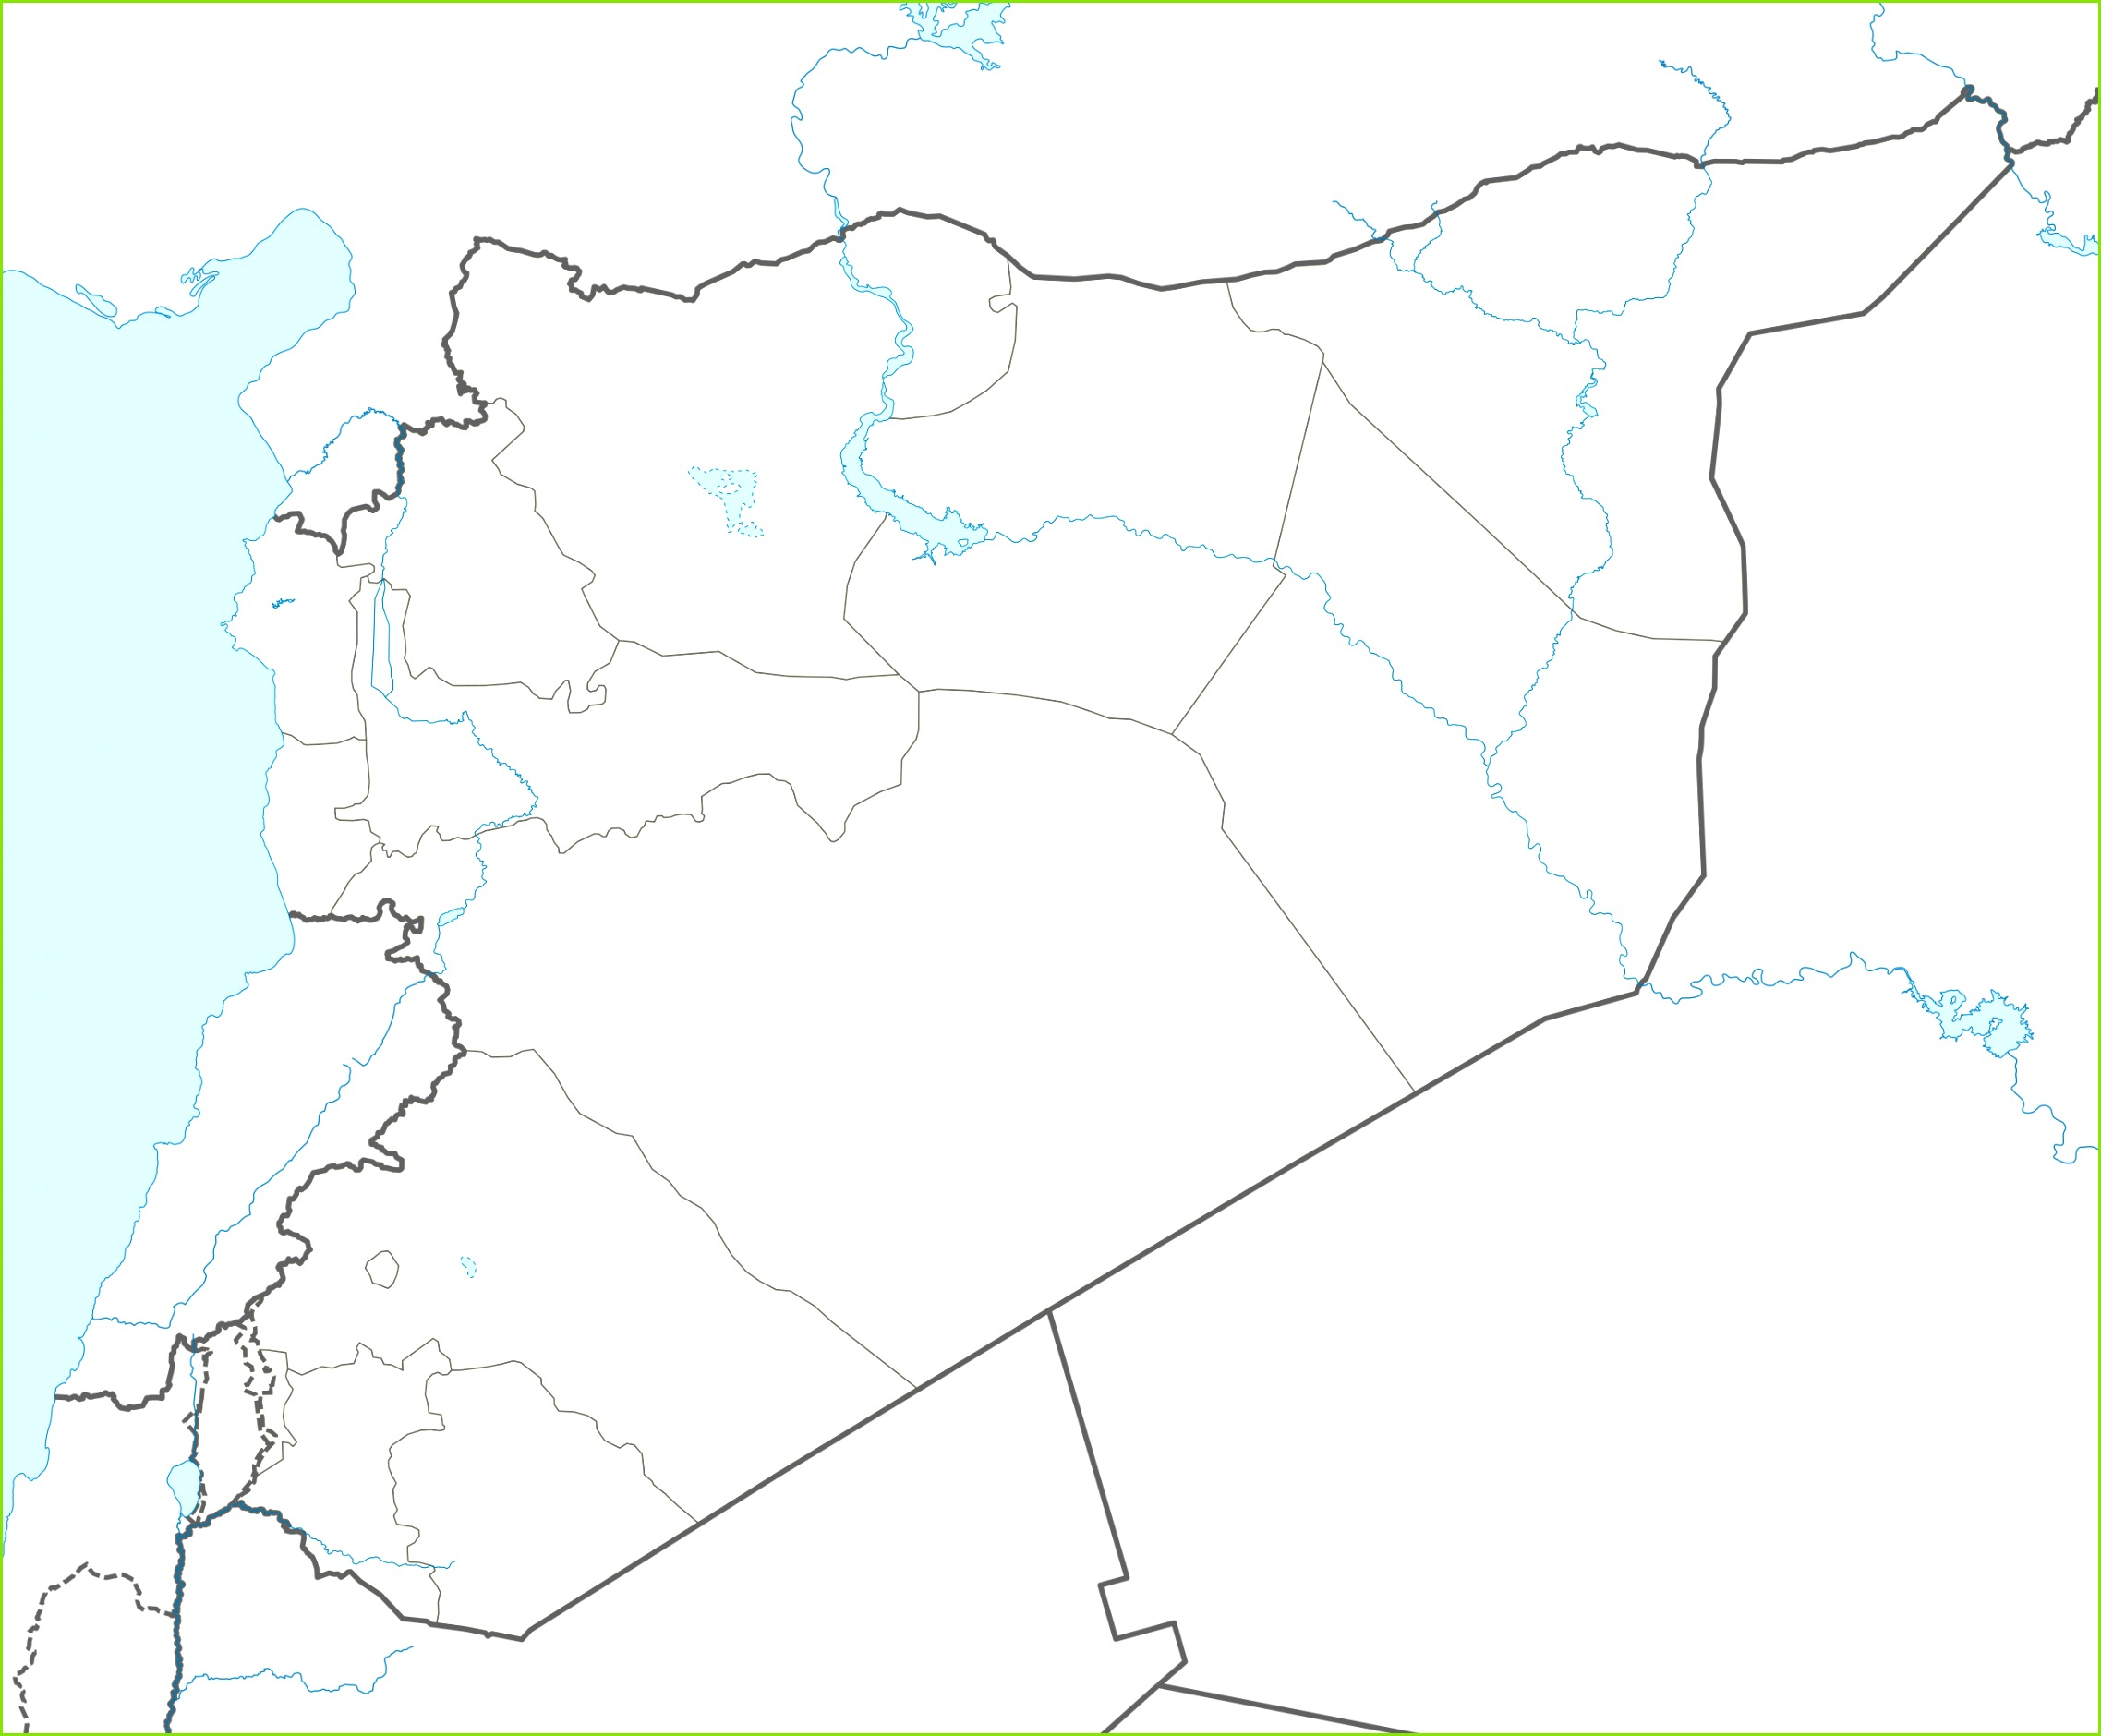 Syrian Civil War detailed map is located in Syria